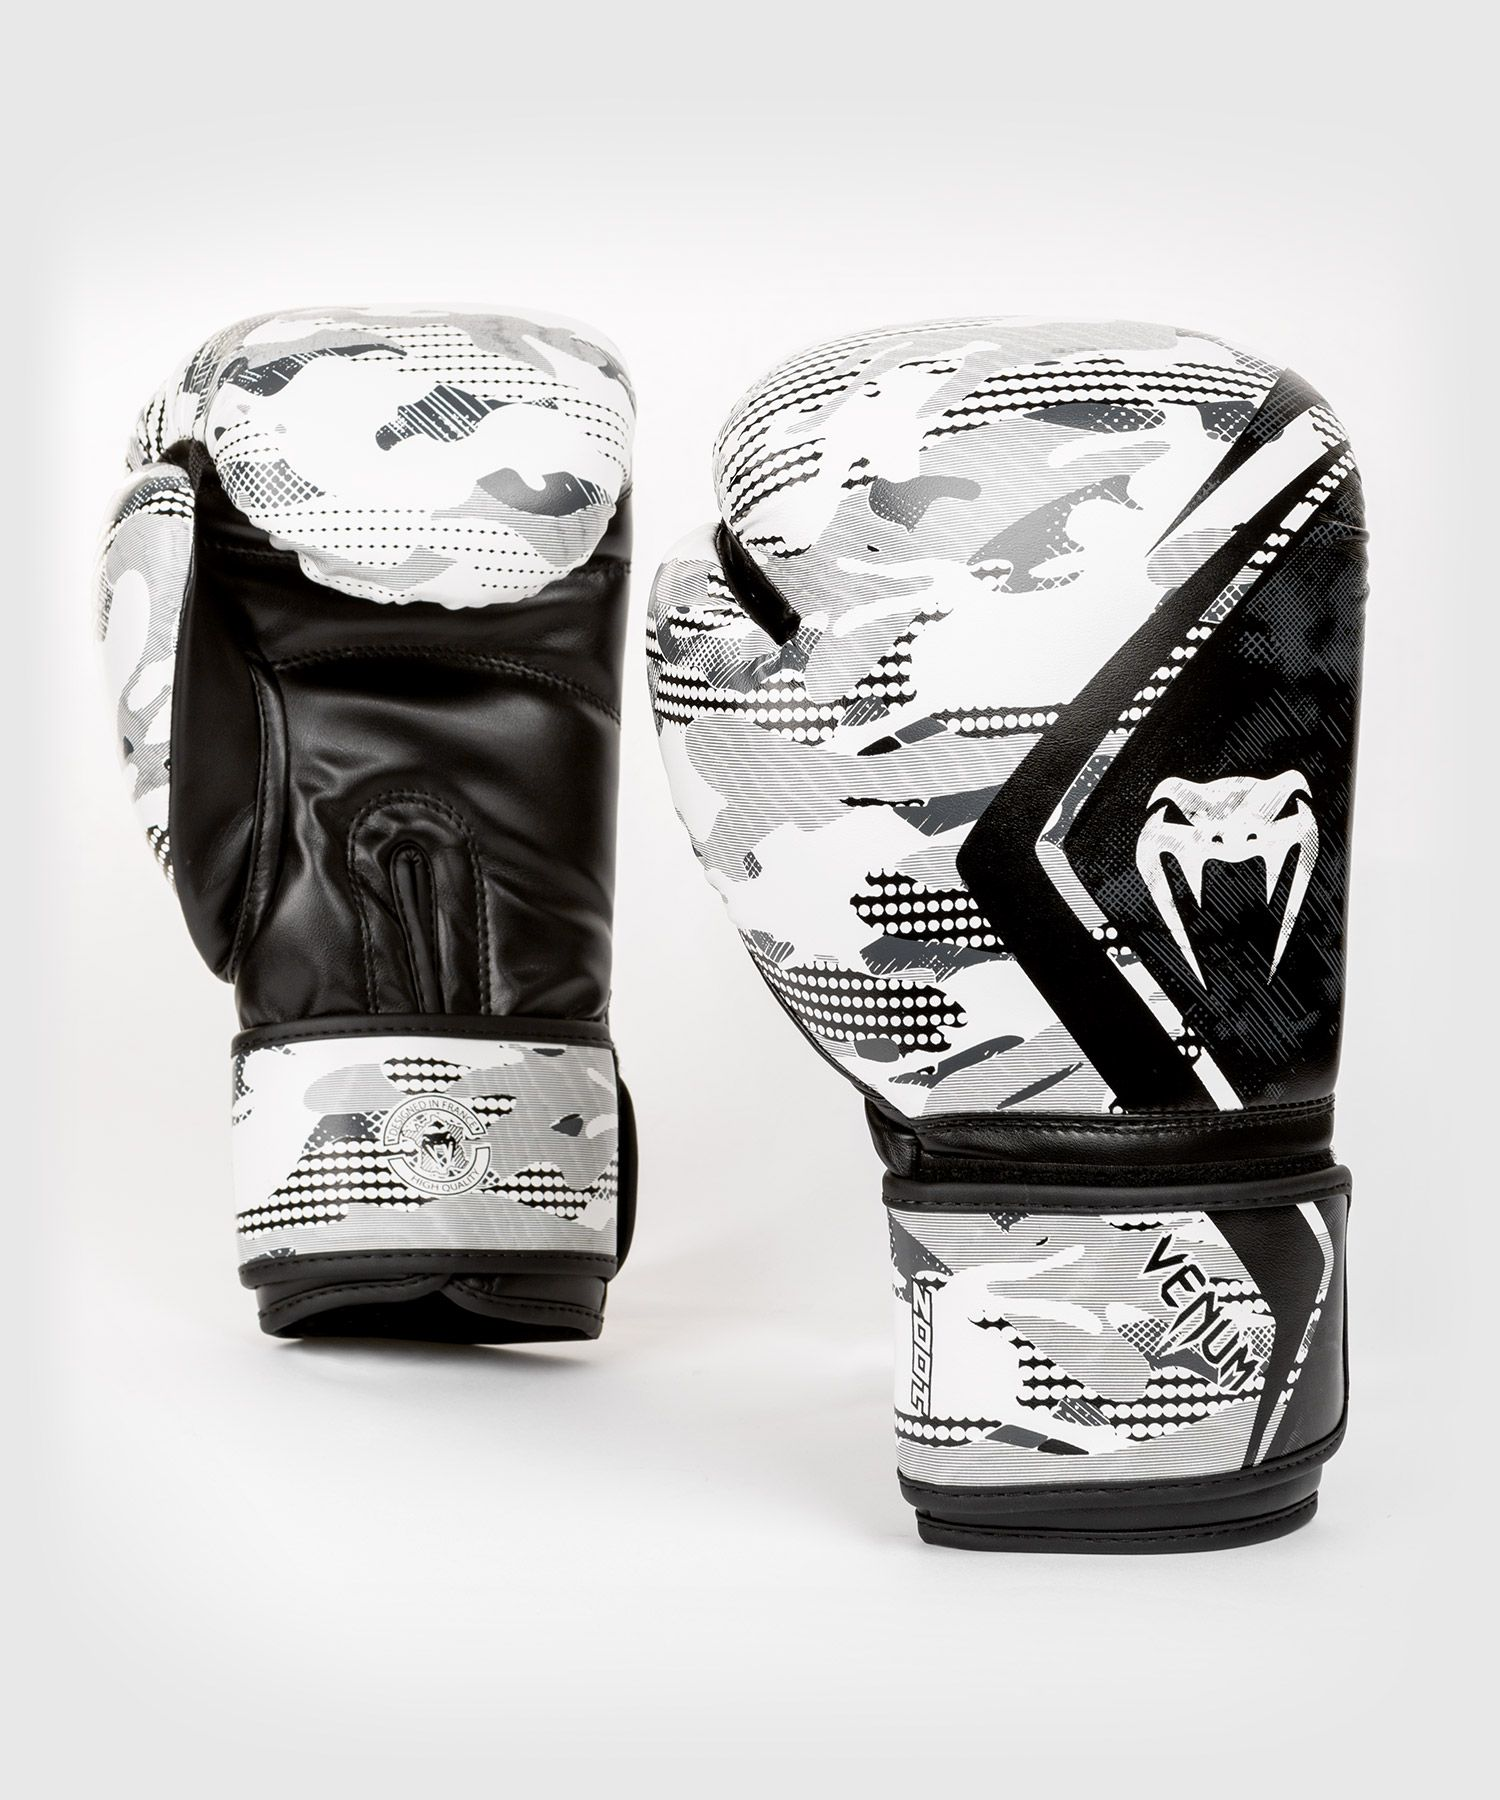 VENUM ボクシンググローブ DEFENDER CONTENDER 2.0 BOXING GLOVES (アーバンカモ) //スパーリンググローブ ボクシング キックボクシング 格闘技 送料無料